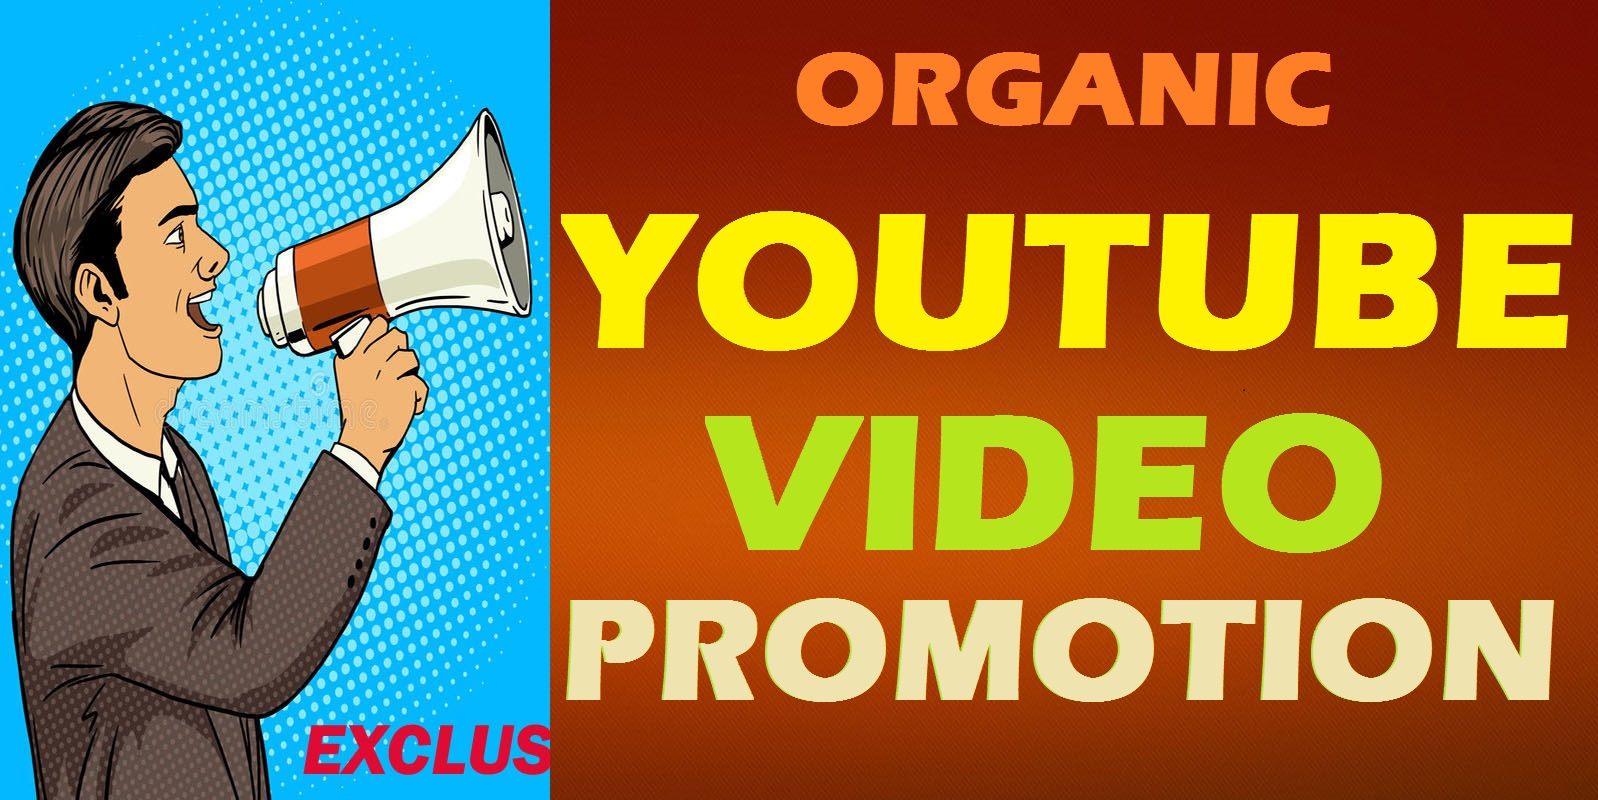 Instant YouTube Video Promotion Via High Quality User